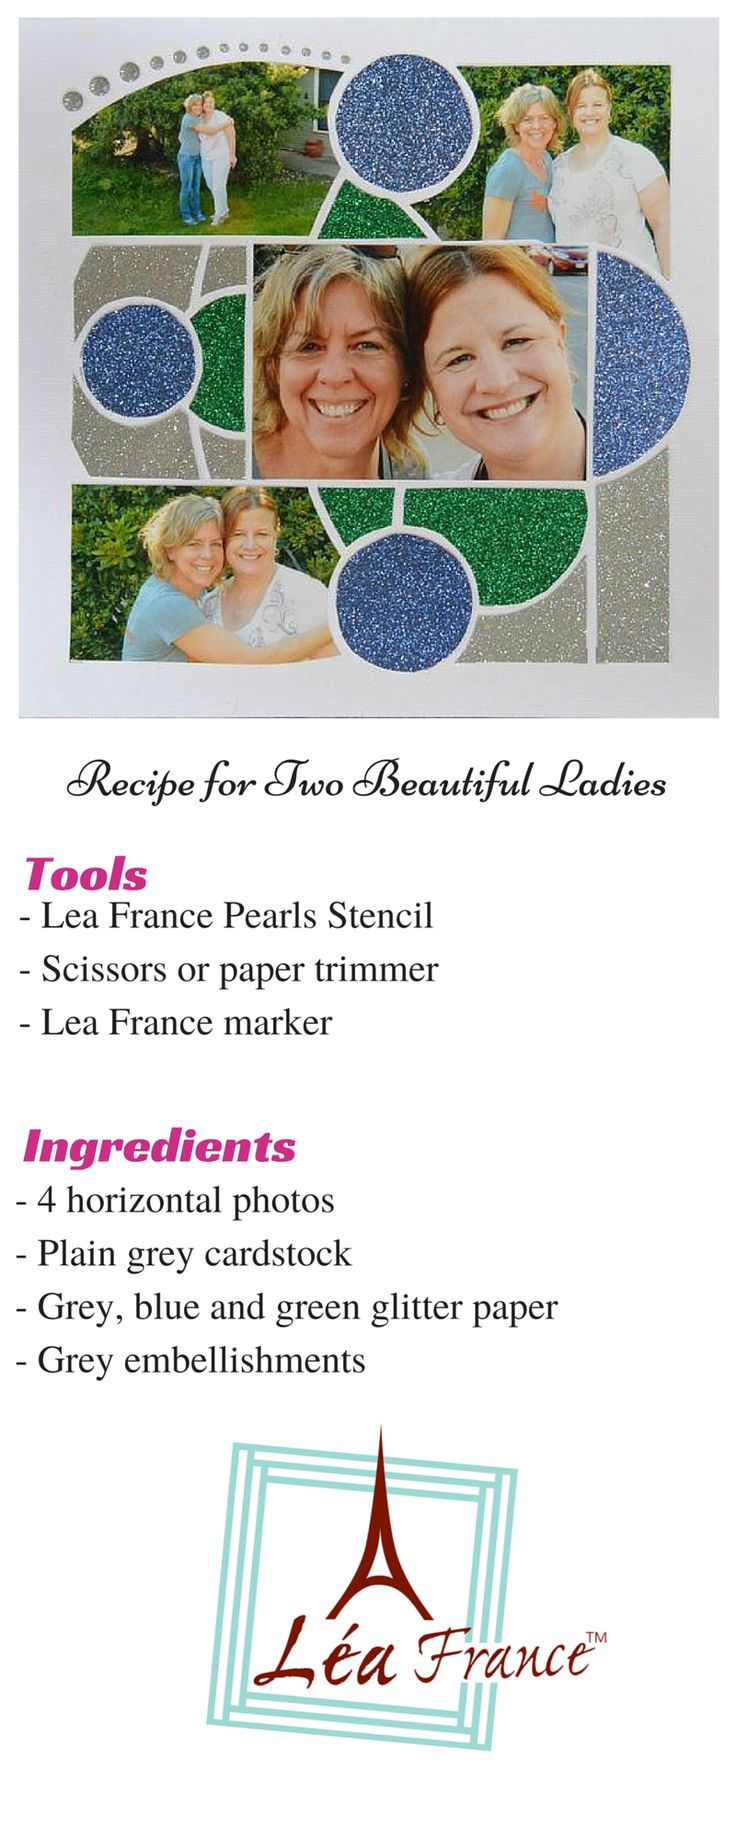 Scrapbook ideas many pictures - European Scrapbooking Page Created By Karen Morley Using Pearls Lea France Stencil If You